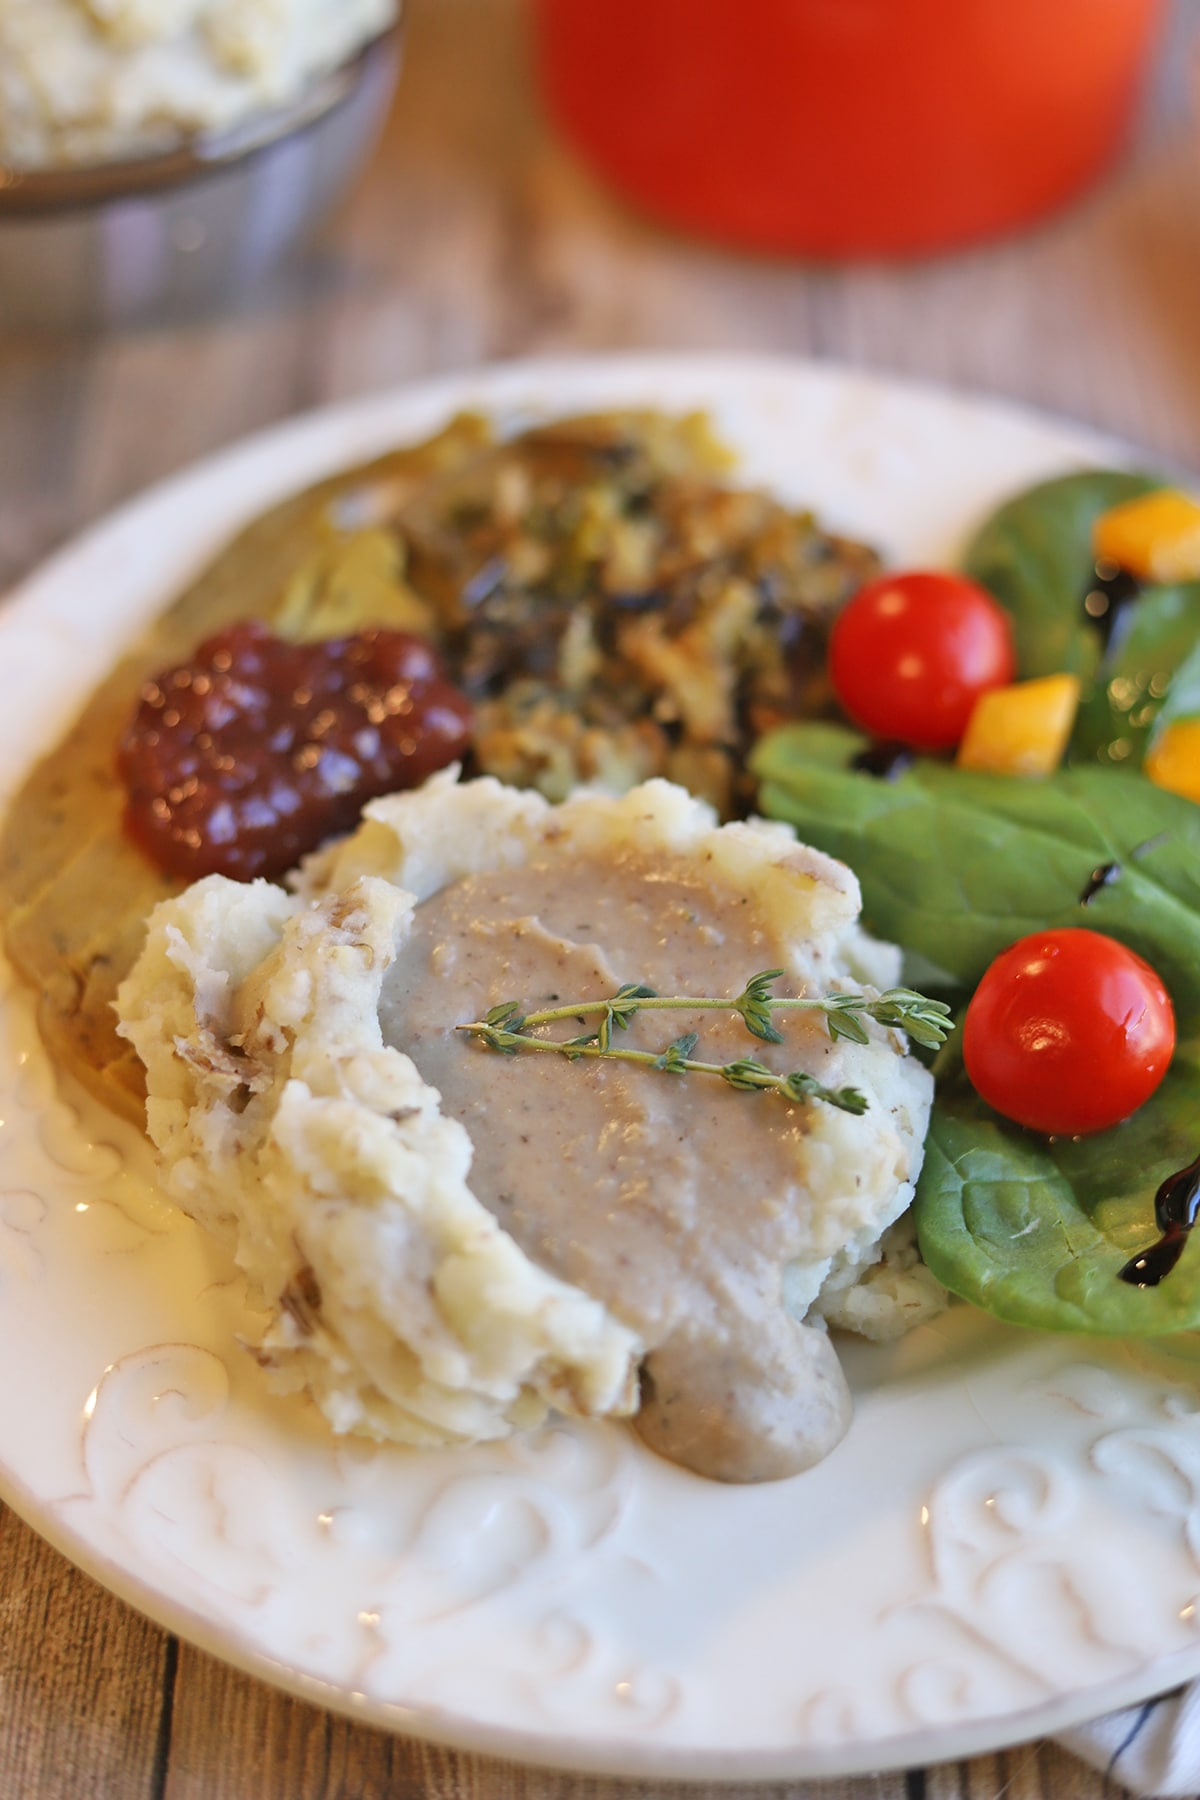 Chestnut gravy on mashed potatoes with salad and holiday roast.